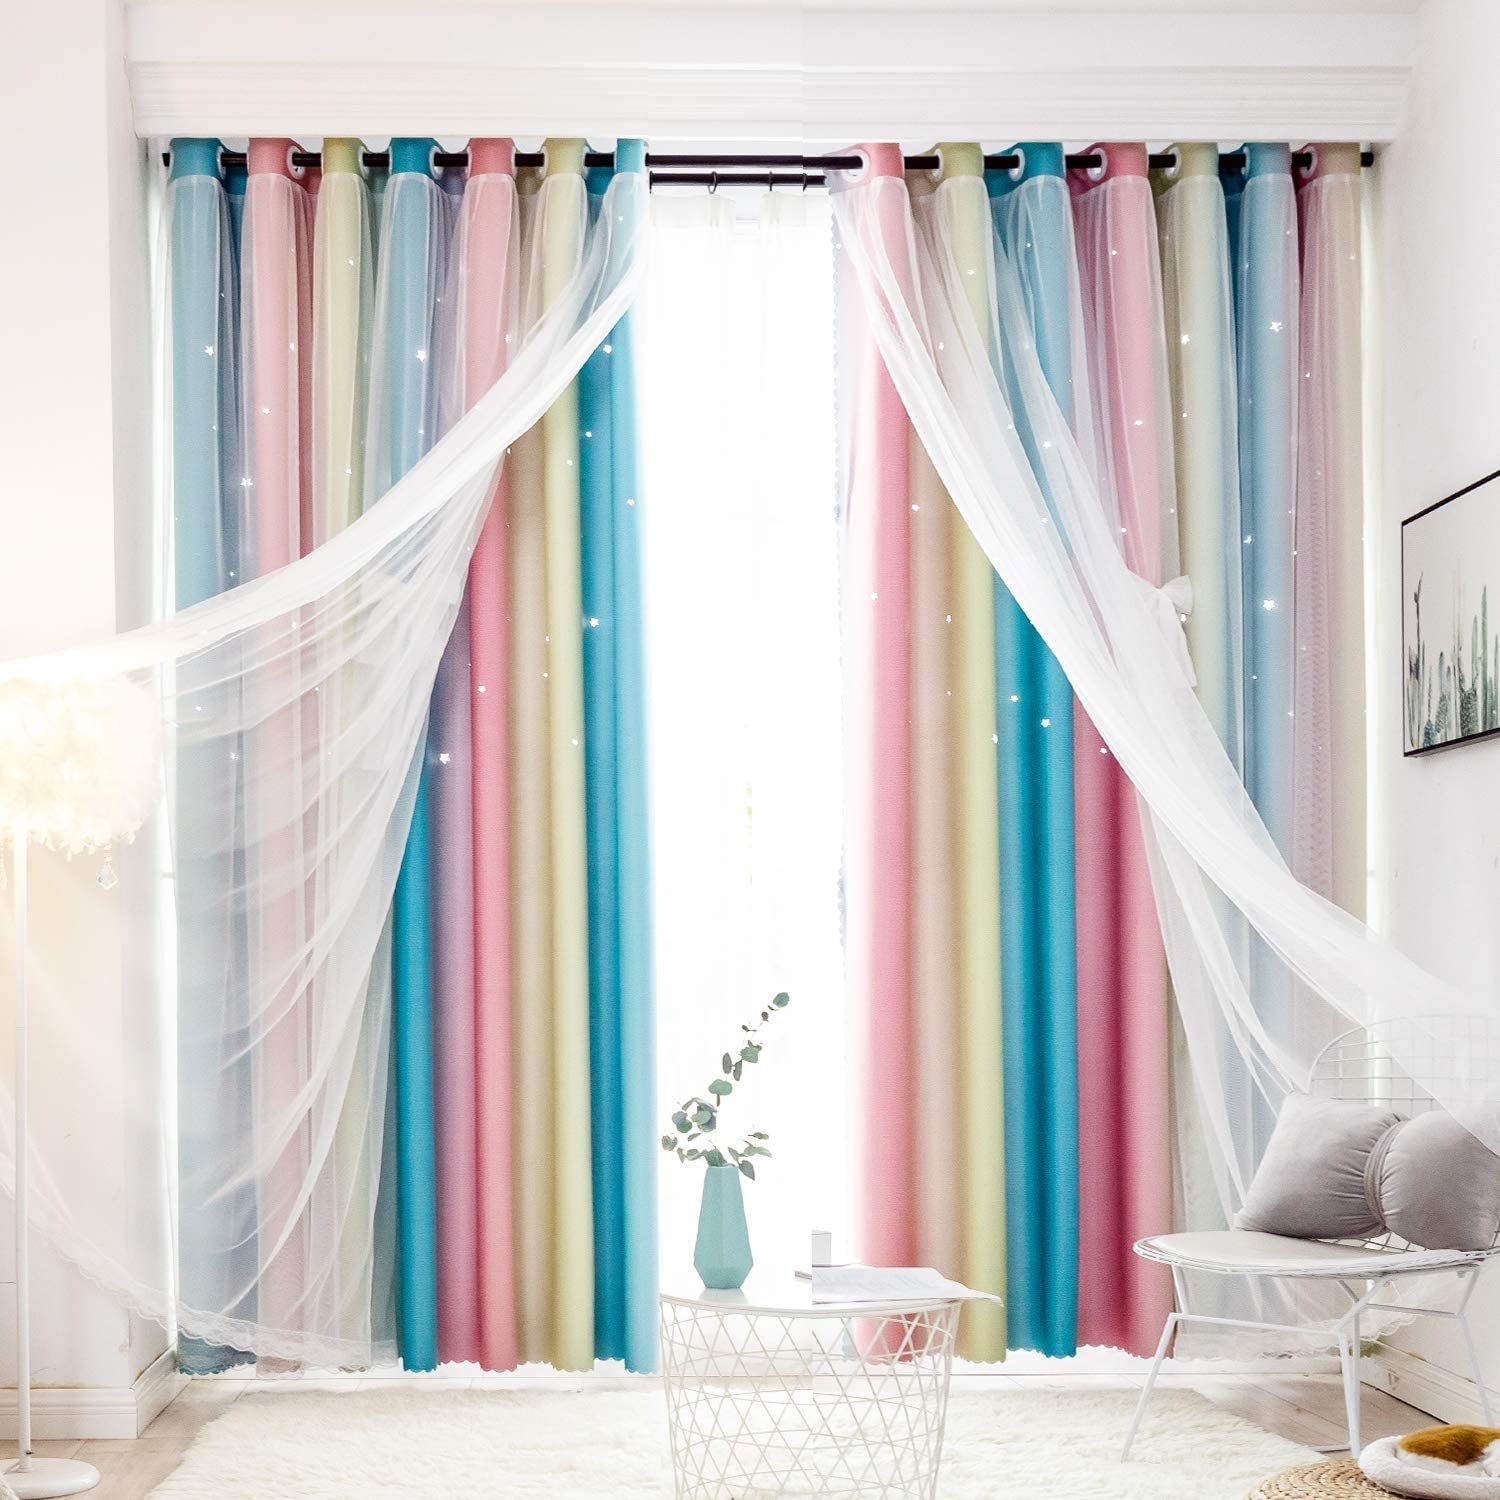 Unistar Blackout Stars Kids Classic Curtains Girls Bedroom for Quality inspection Colorful